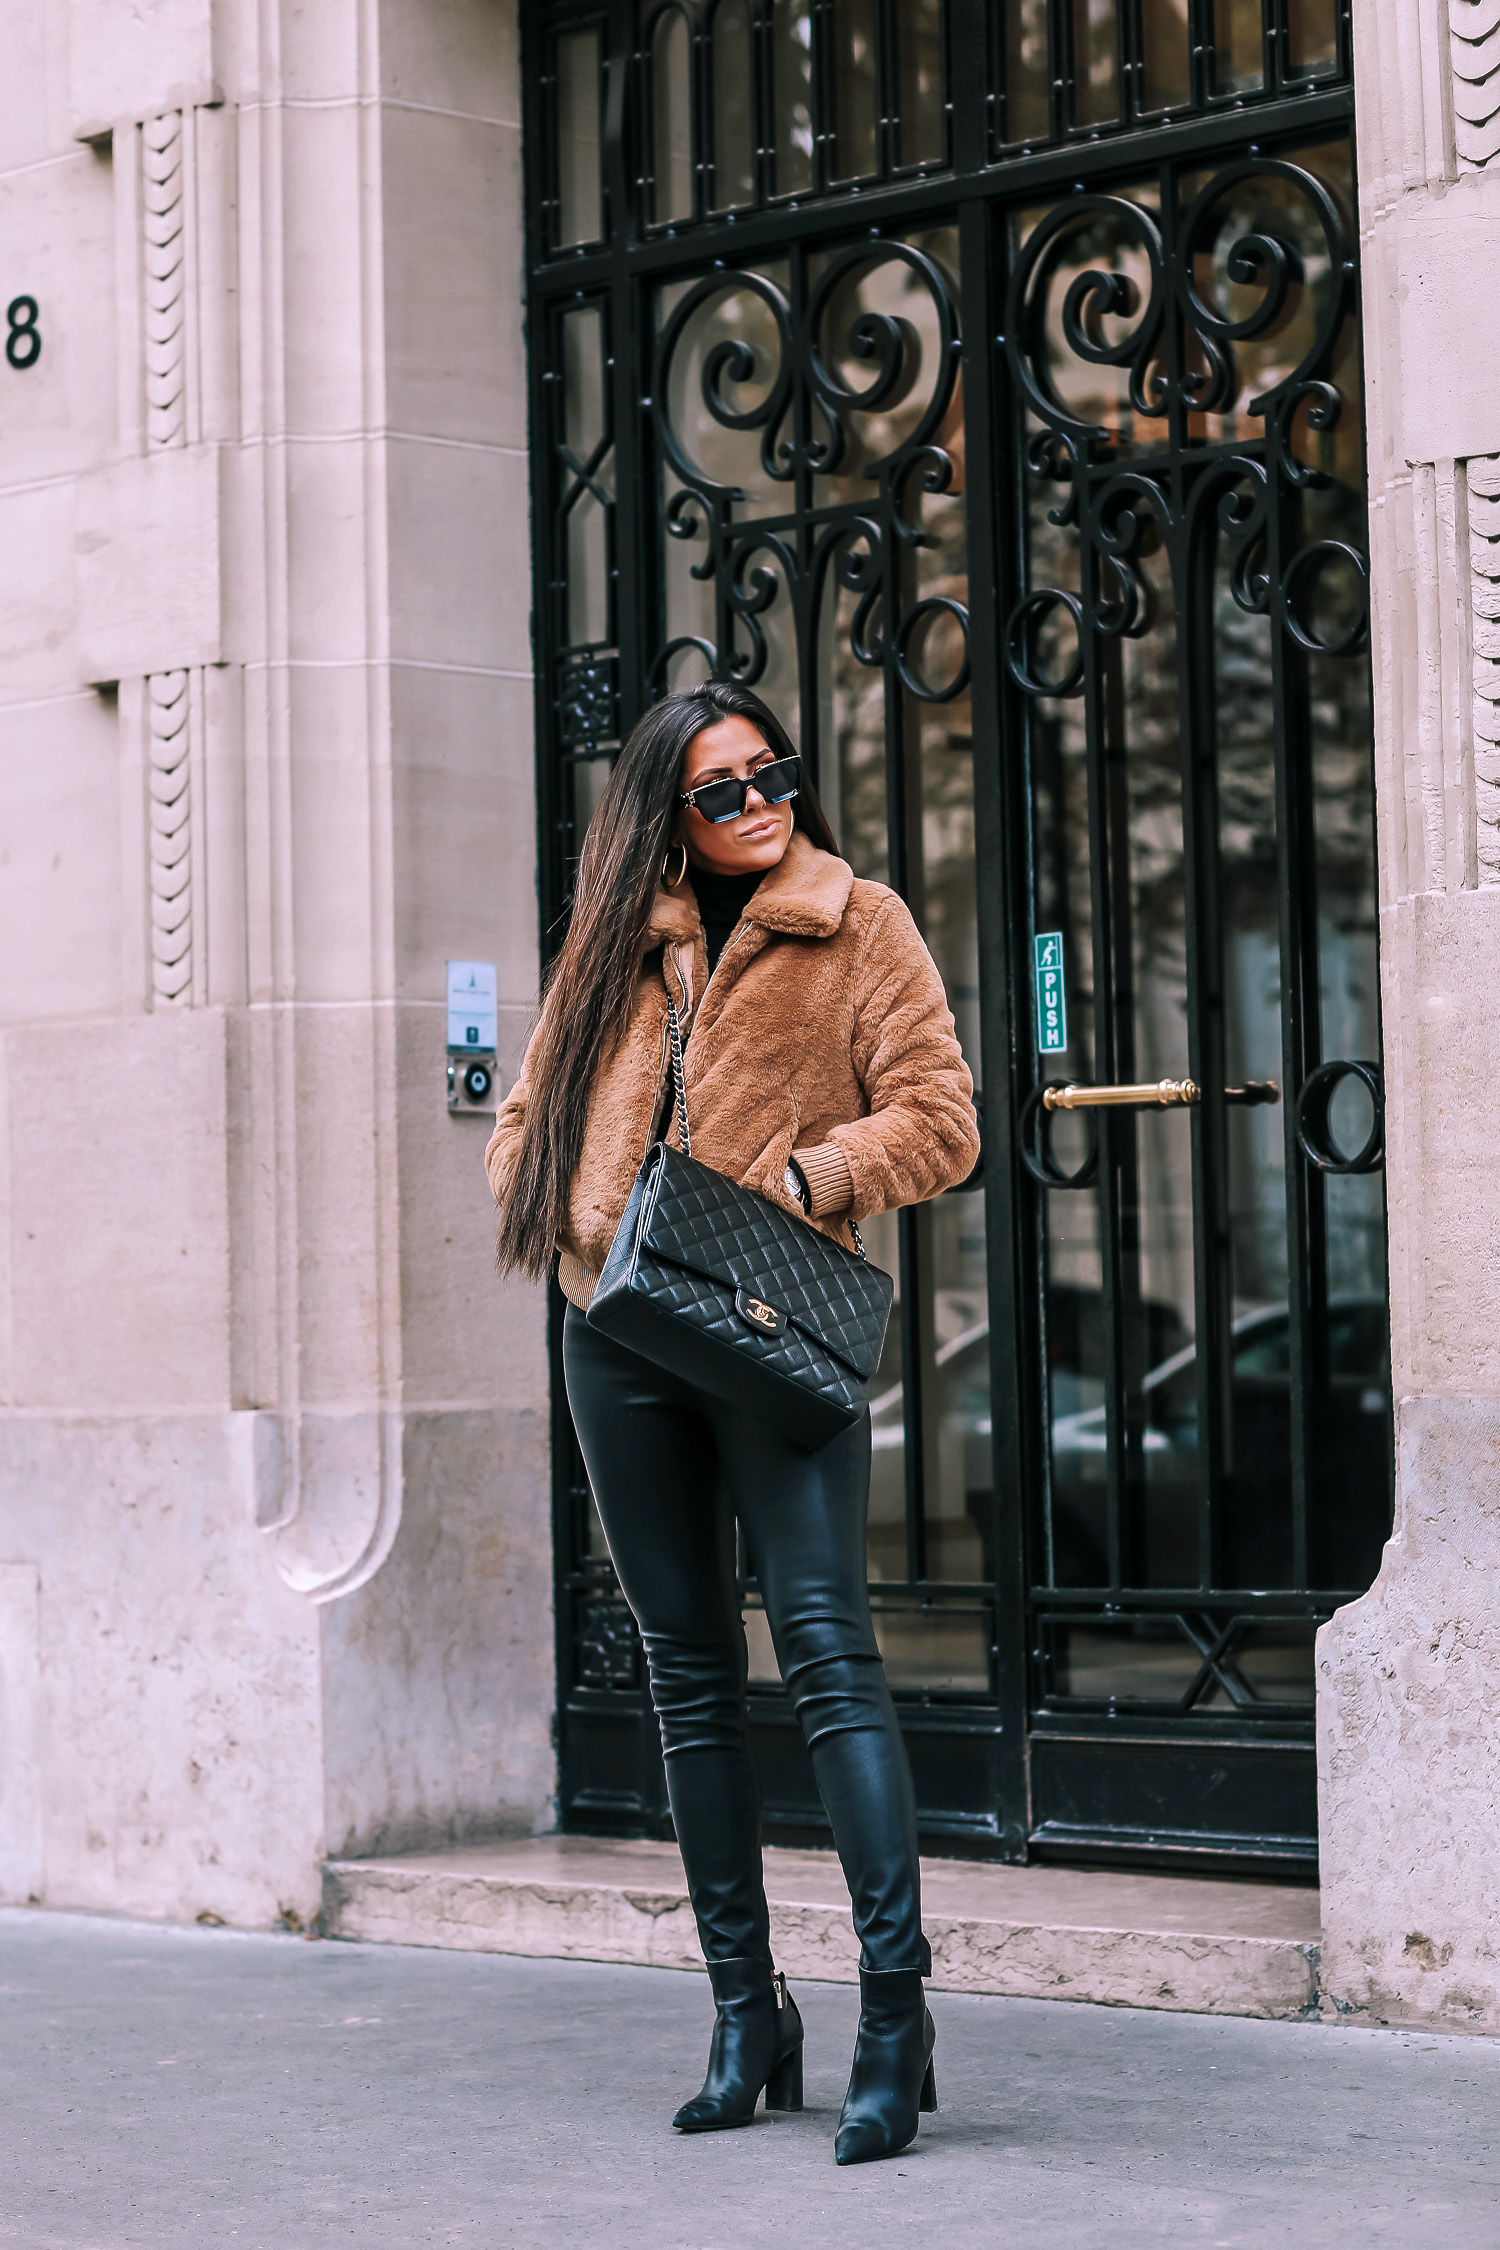 paris fall fashion 2019, fall fashion 2019, banana republic fall outfits 2019, paris outfit ideas fall and winter, what to wear in paris in october november, emily ann gemma-2 | Do You Like Neon Or Neutrals?! Two Everyday Fall Outfits by popular Oklahoma fashion blog, The Sweetest Thing: image of a woman outside in Paris and wearing a Banana Republic Faux Fur Bomber, Banana Republic Merino-Blend Funnel-Neck Sweater, and Banana Republic High-Rise Skinny Coated Jean.